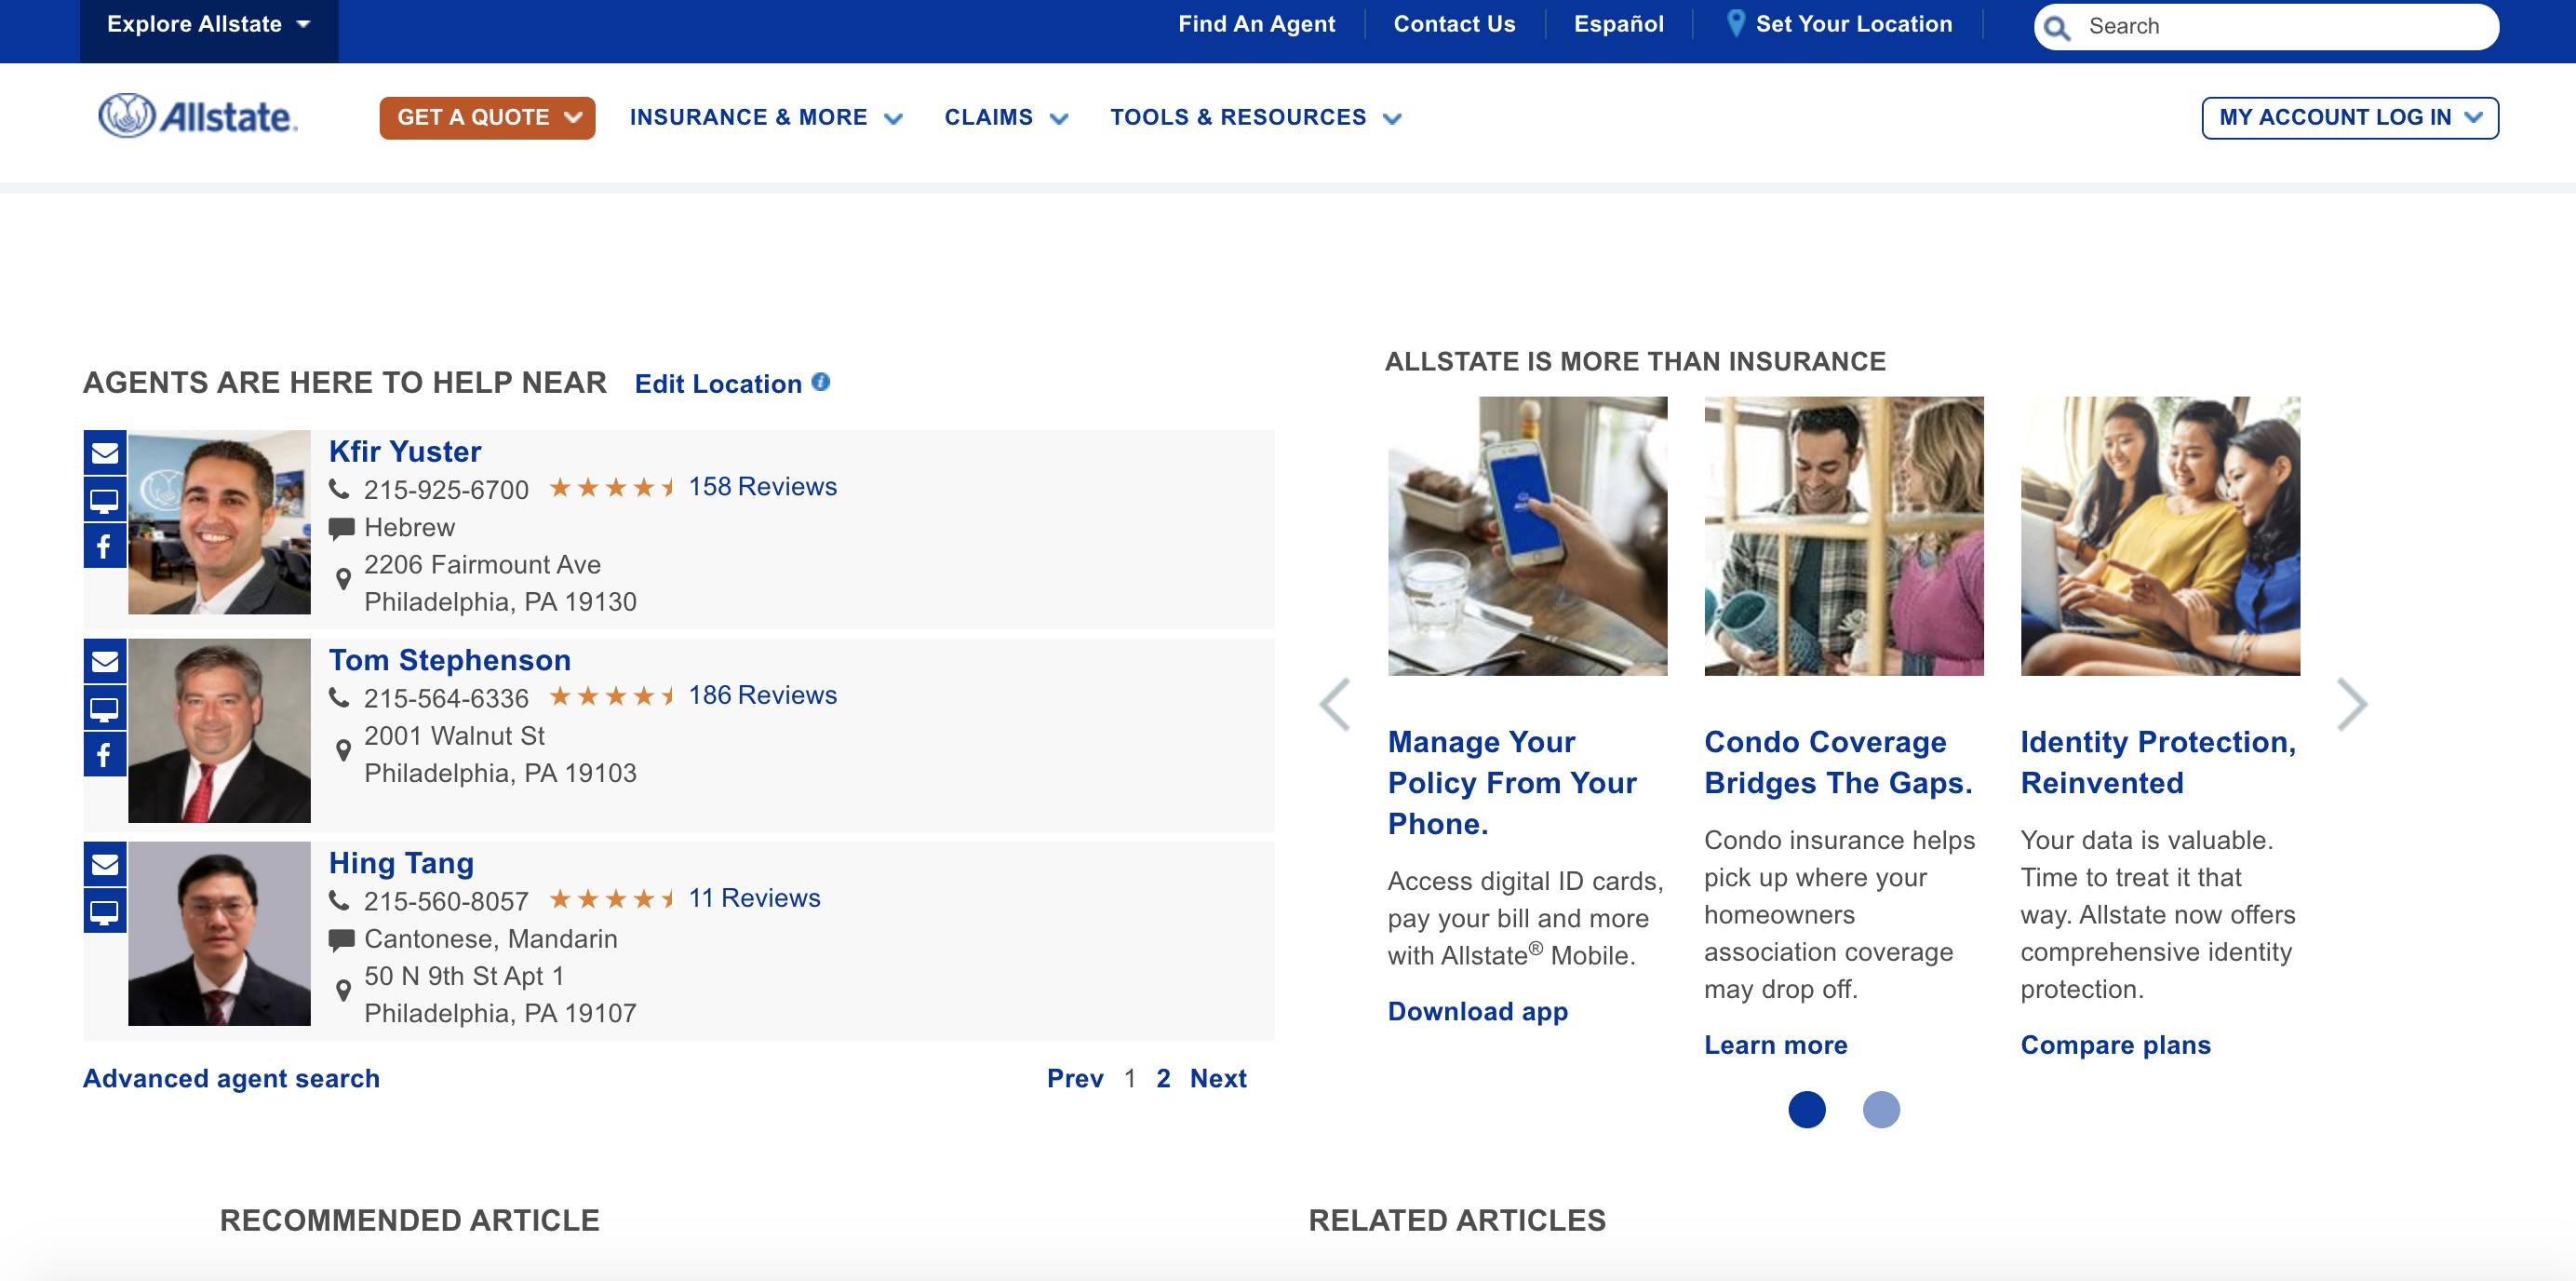 Allstate website Home Page Agents